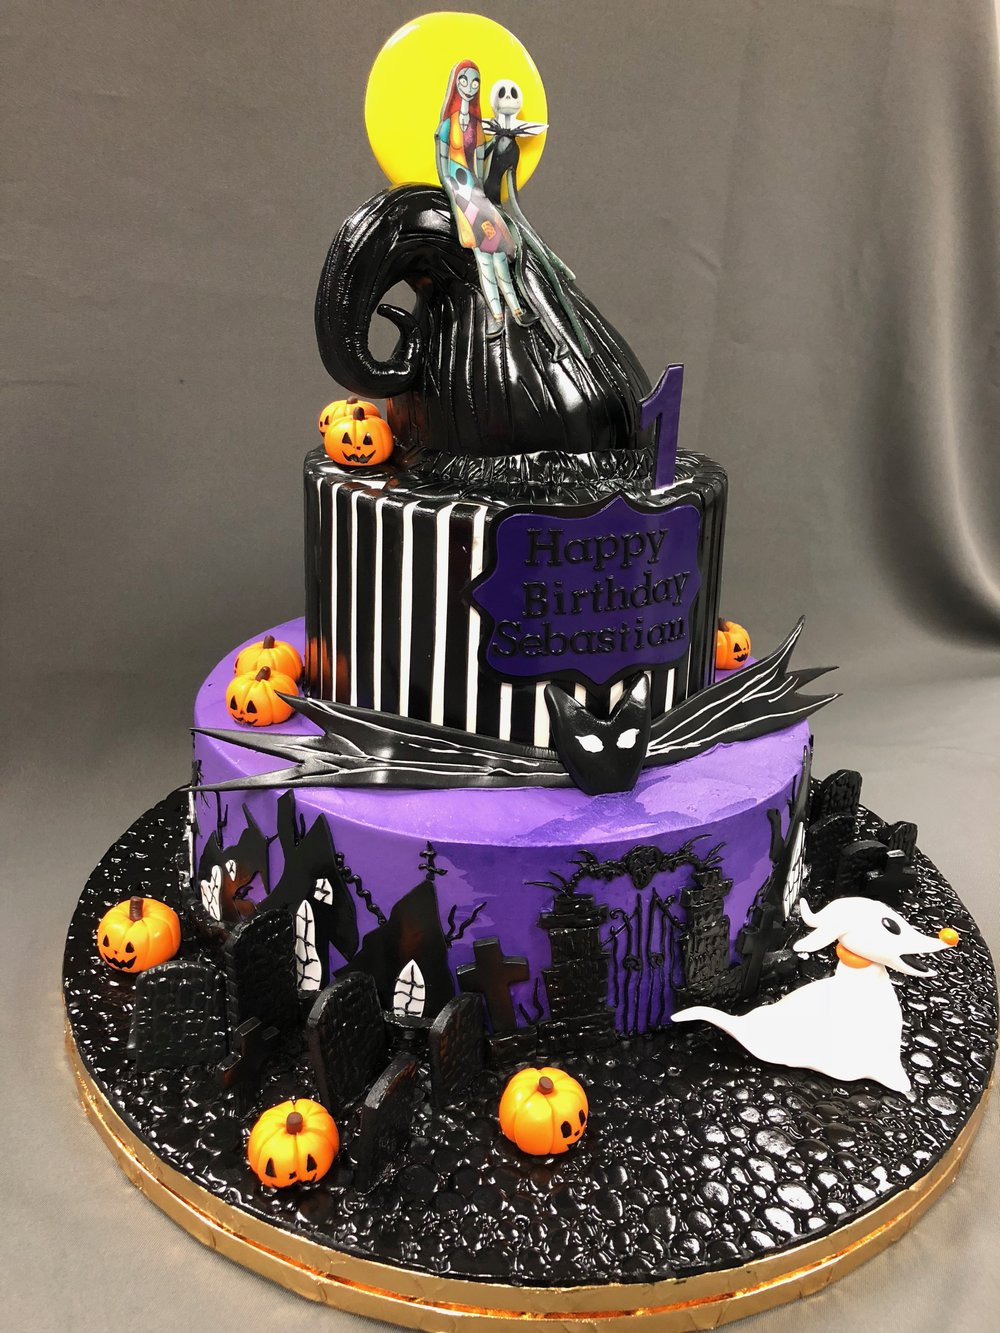 The Nightmare Before Christmas Theme 1st Birthday Cake NJ